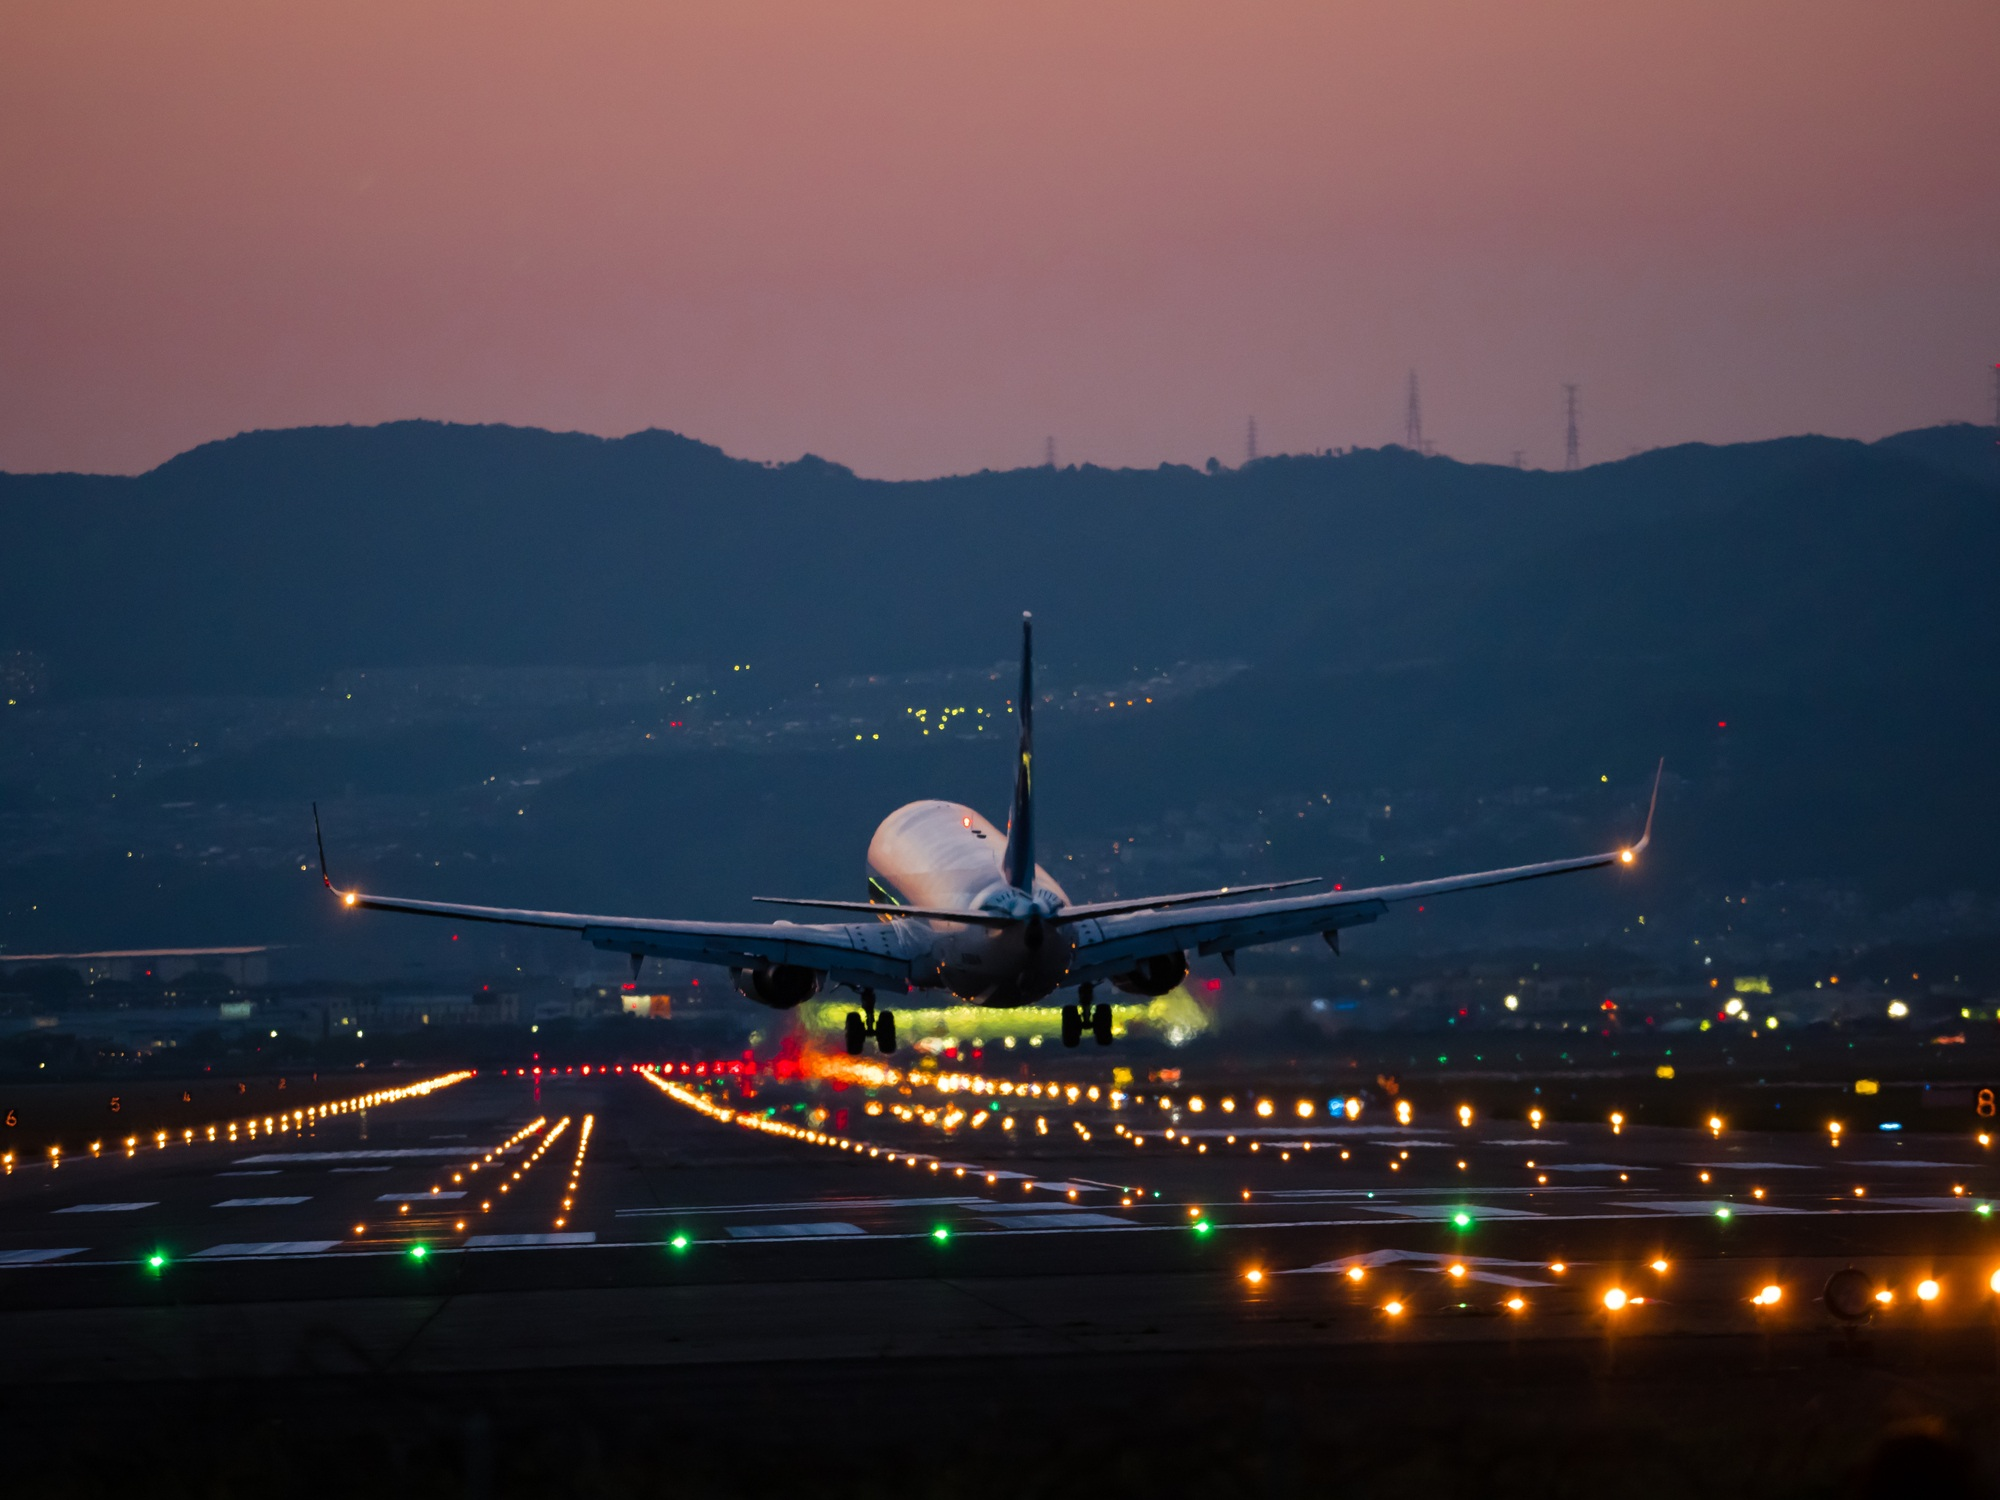 Plane landing on the runway at night with lights and a sunset